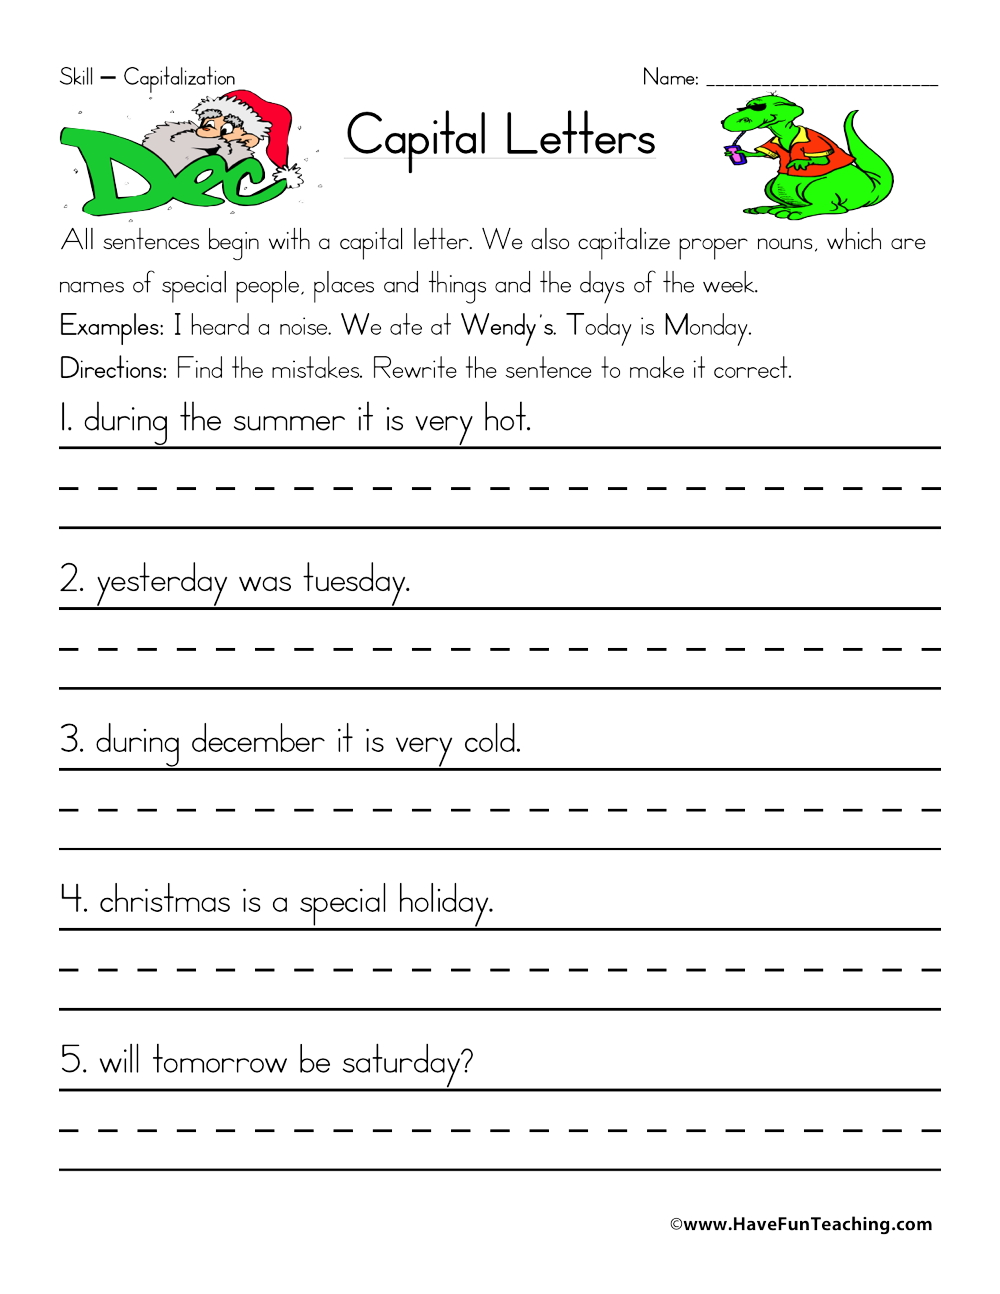 By Have Fun Teaching on May 7, 2013 in Capitalization Worksheets